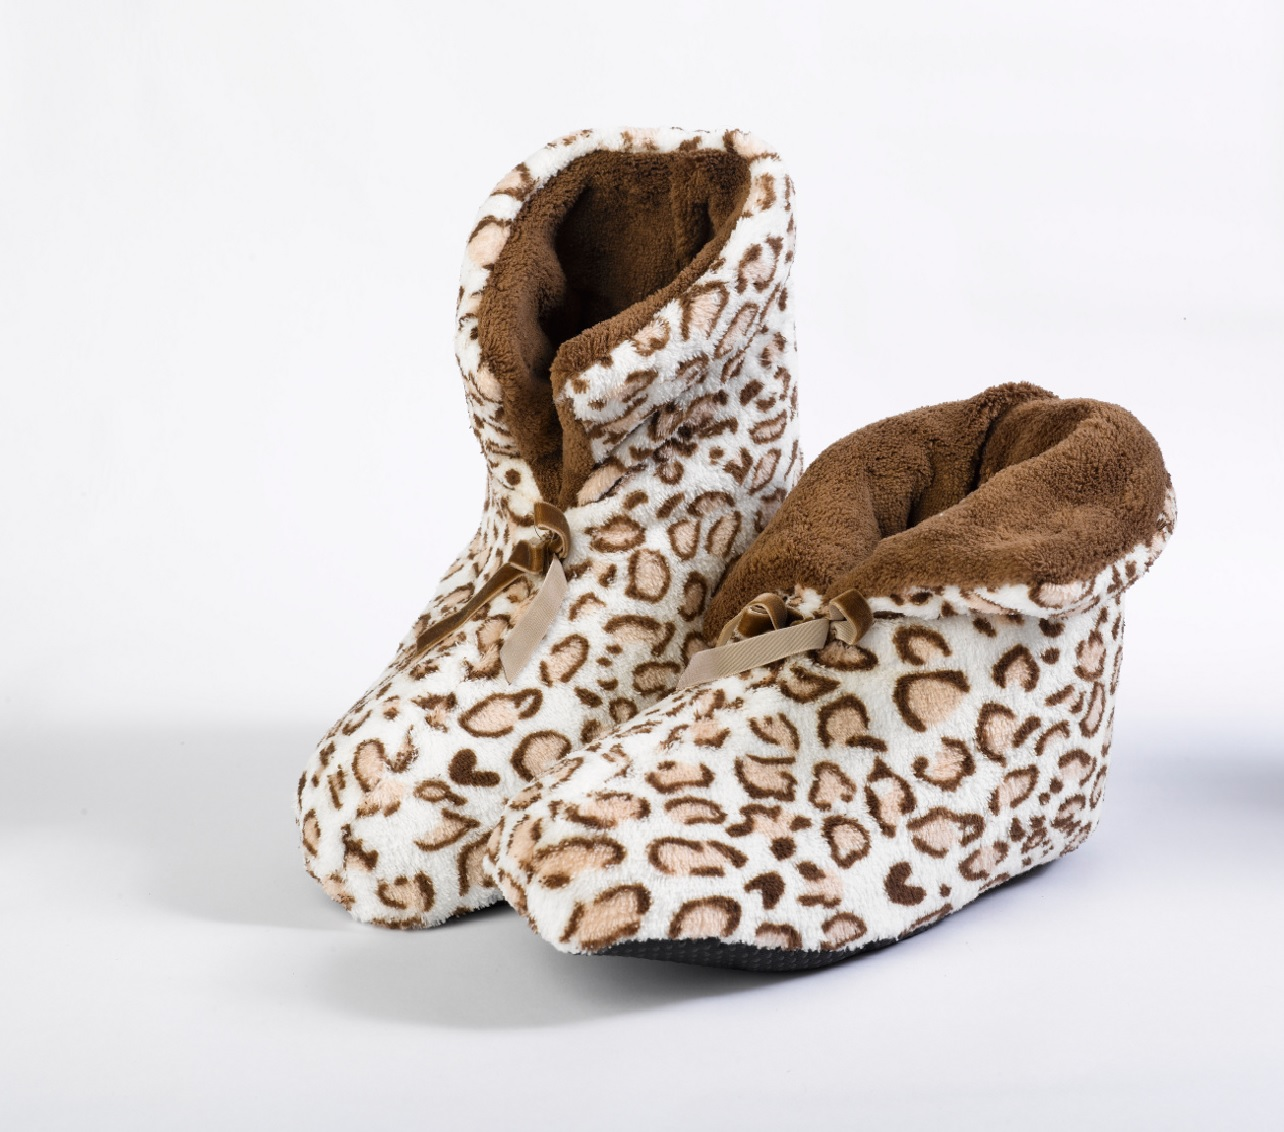 Earn Ur Spotz Slipper Boots cuz a hard life in this wild world. But keep it comfy in these slipper boots that have round toez and a leopard print all ova.